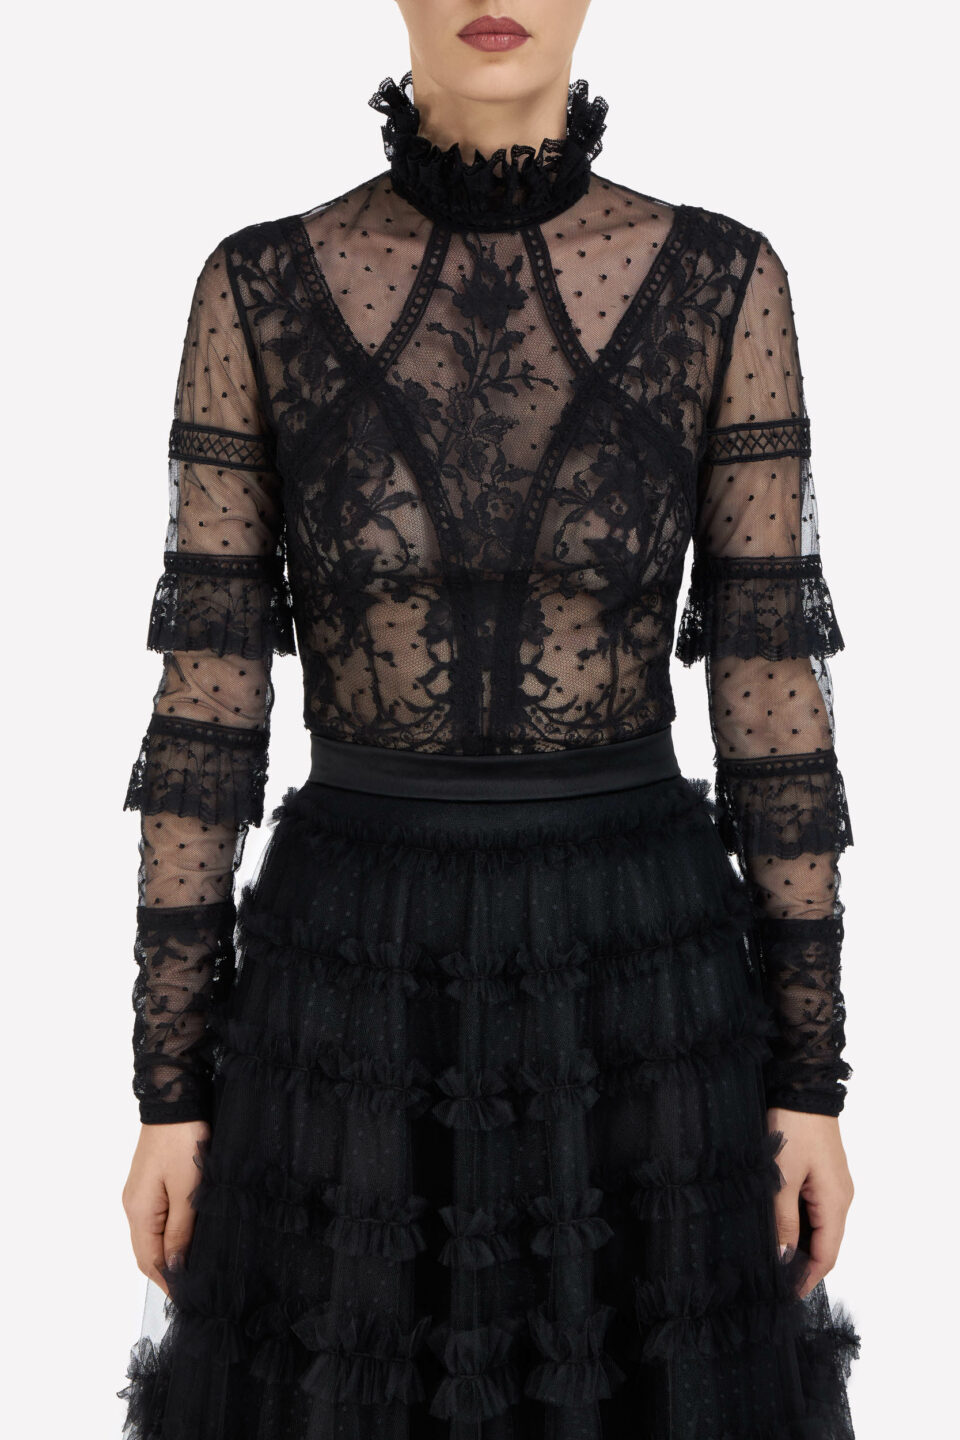 Anastasia FW2153 Black Dotted French Tulle & French Lace Bodysuit with Ruffle Details / Anastasia FW2155 Black French Tulle Evening Skirt with Double-Edged Ruffles